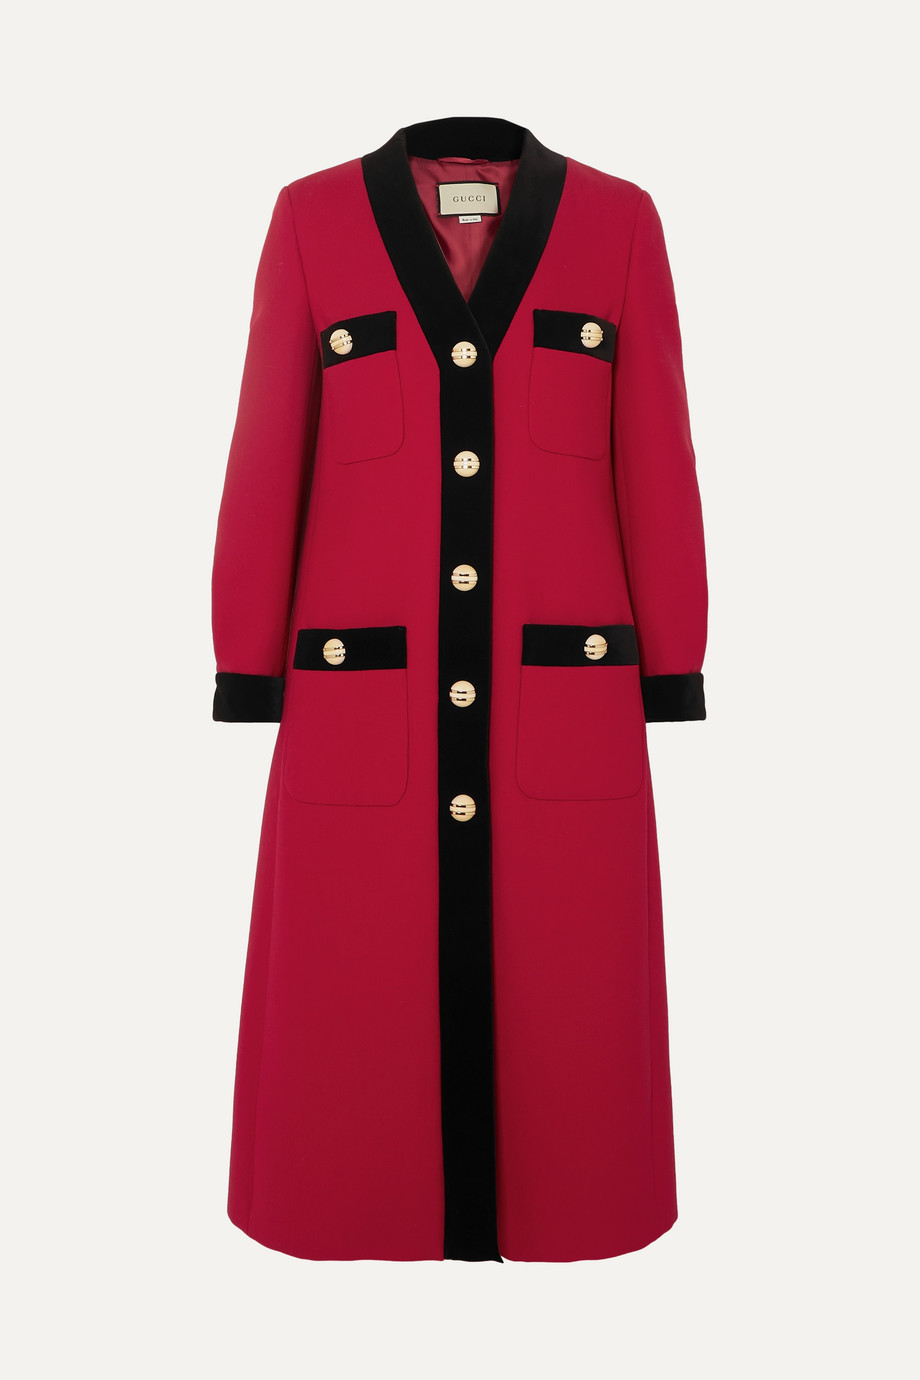 Gucci Velvet-trimmed wool-crepe coat